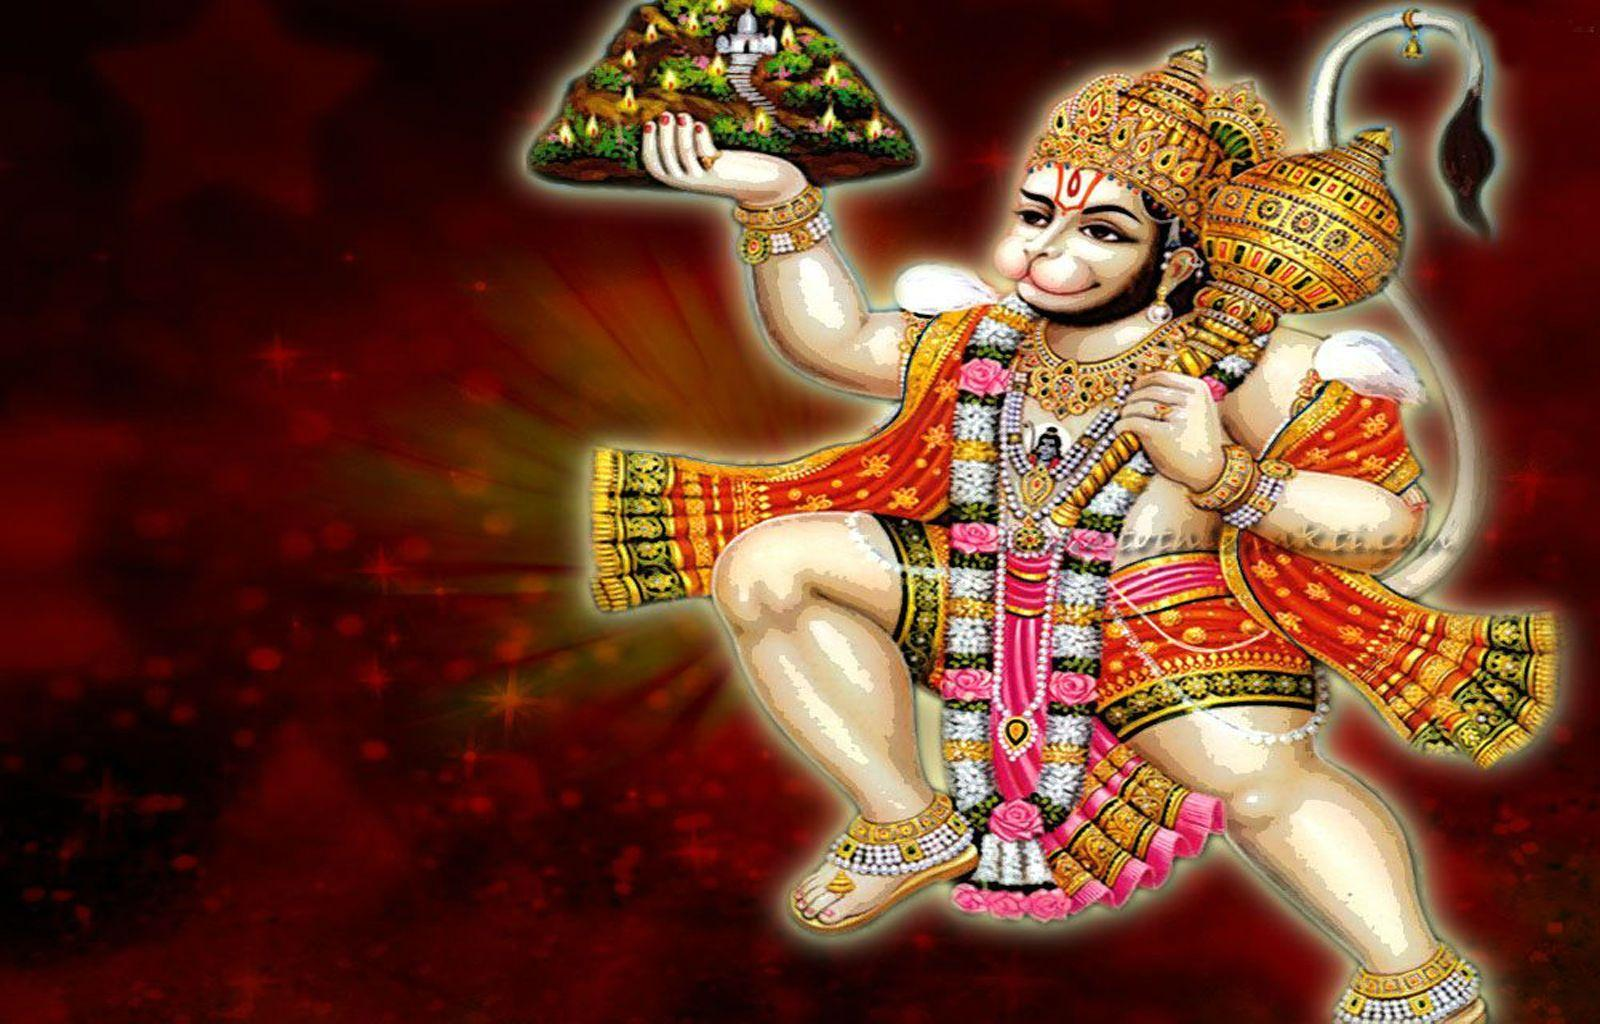 Free download Hanuman desktop Wallpapers & image